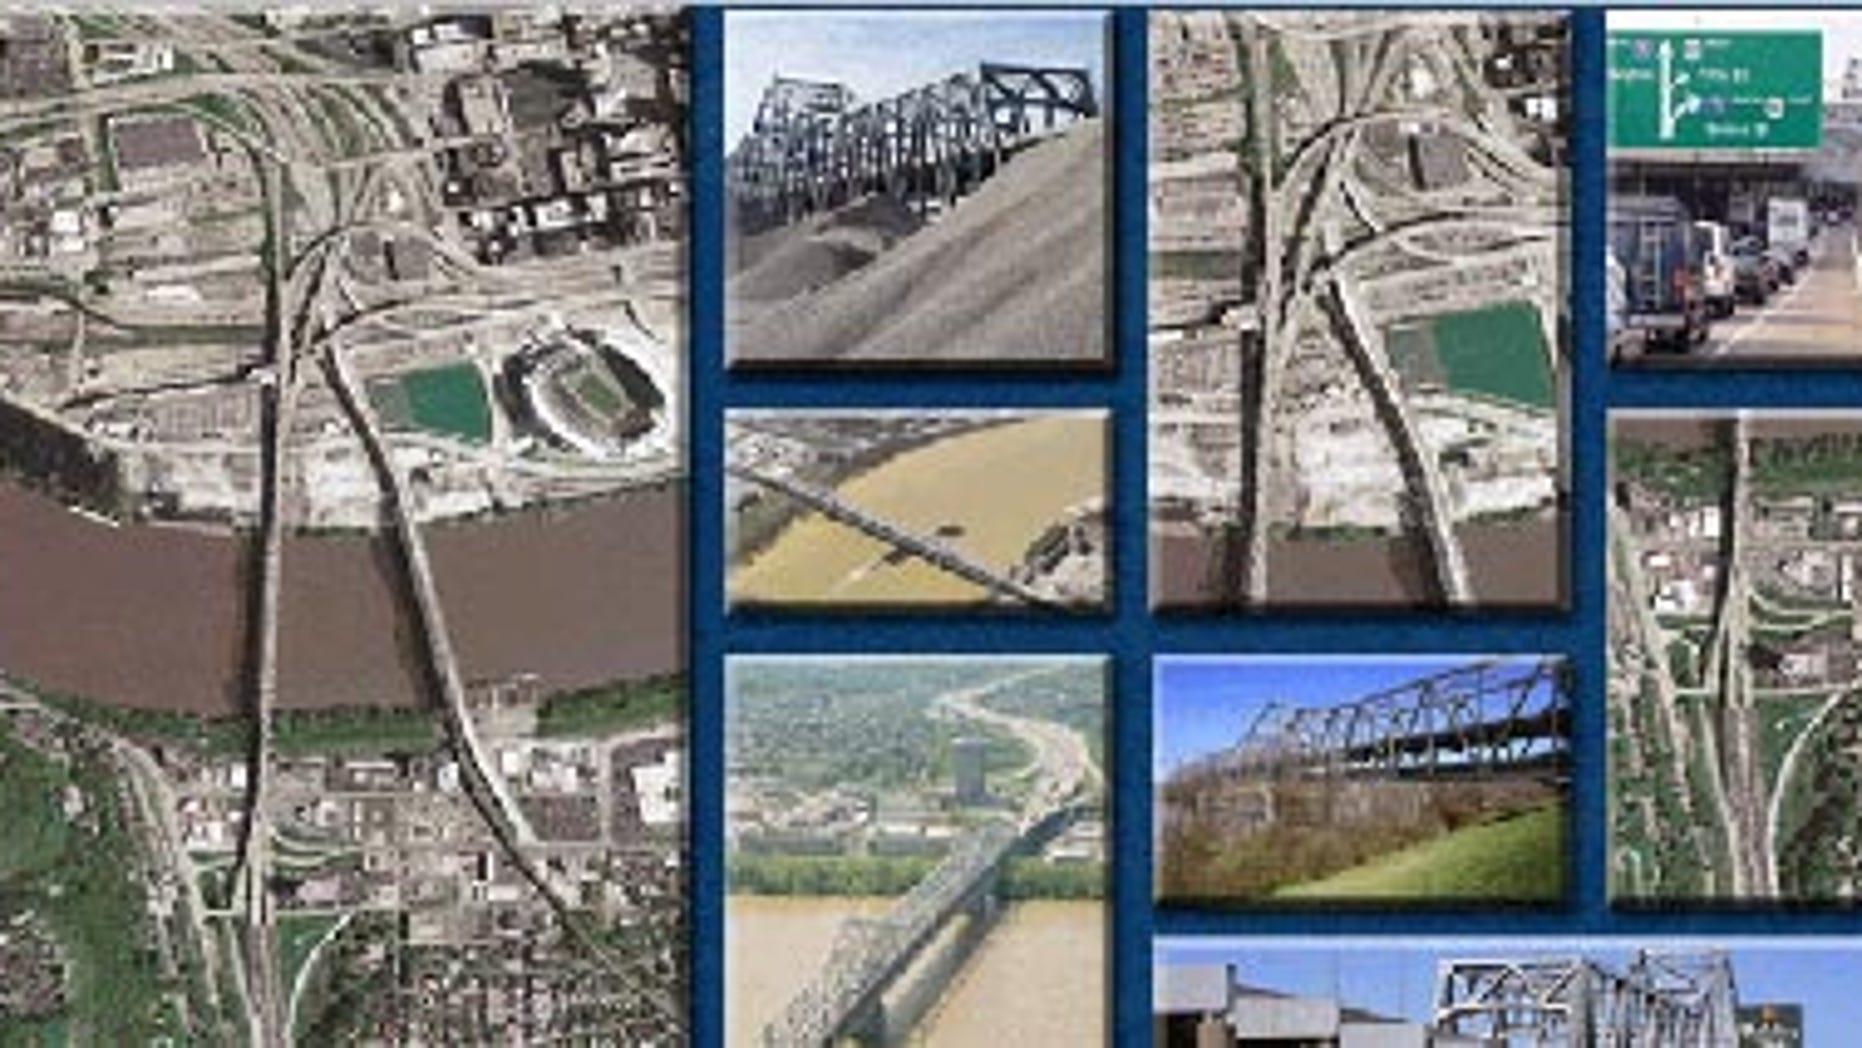 The Brent Spence Bridge on Interstate 75 connects Ohio to Kentucky, and is in dire need of repairs, the U.S. Department of Transportation says.